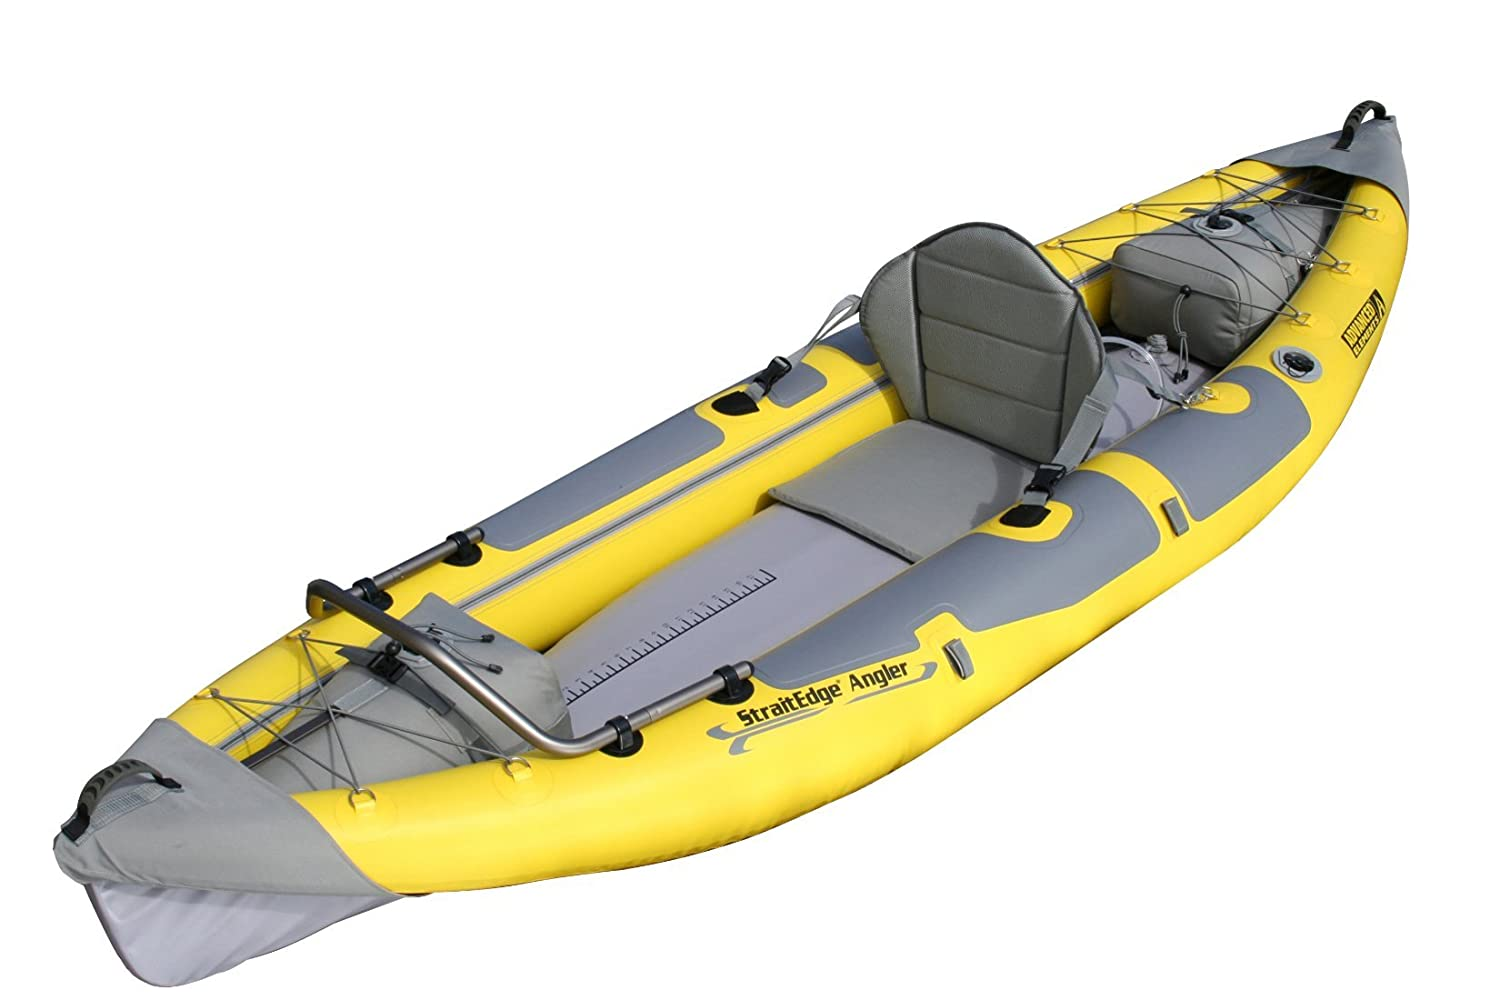 Best Inflatable Boat For The Money